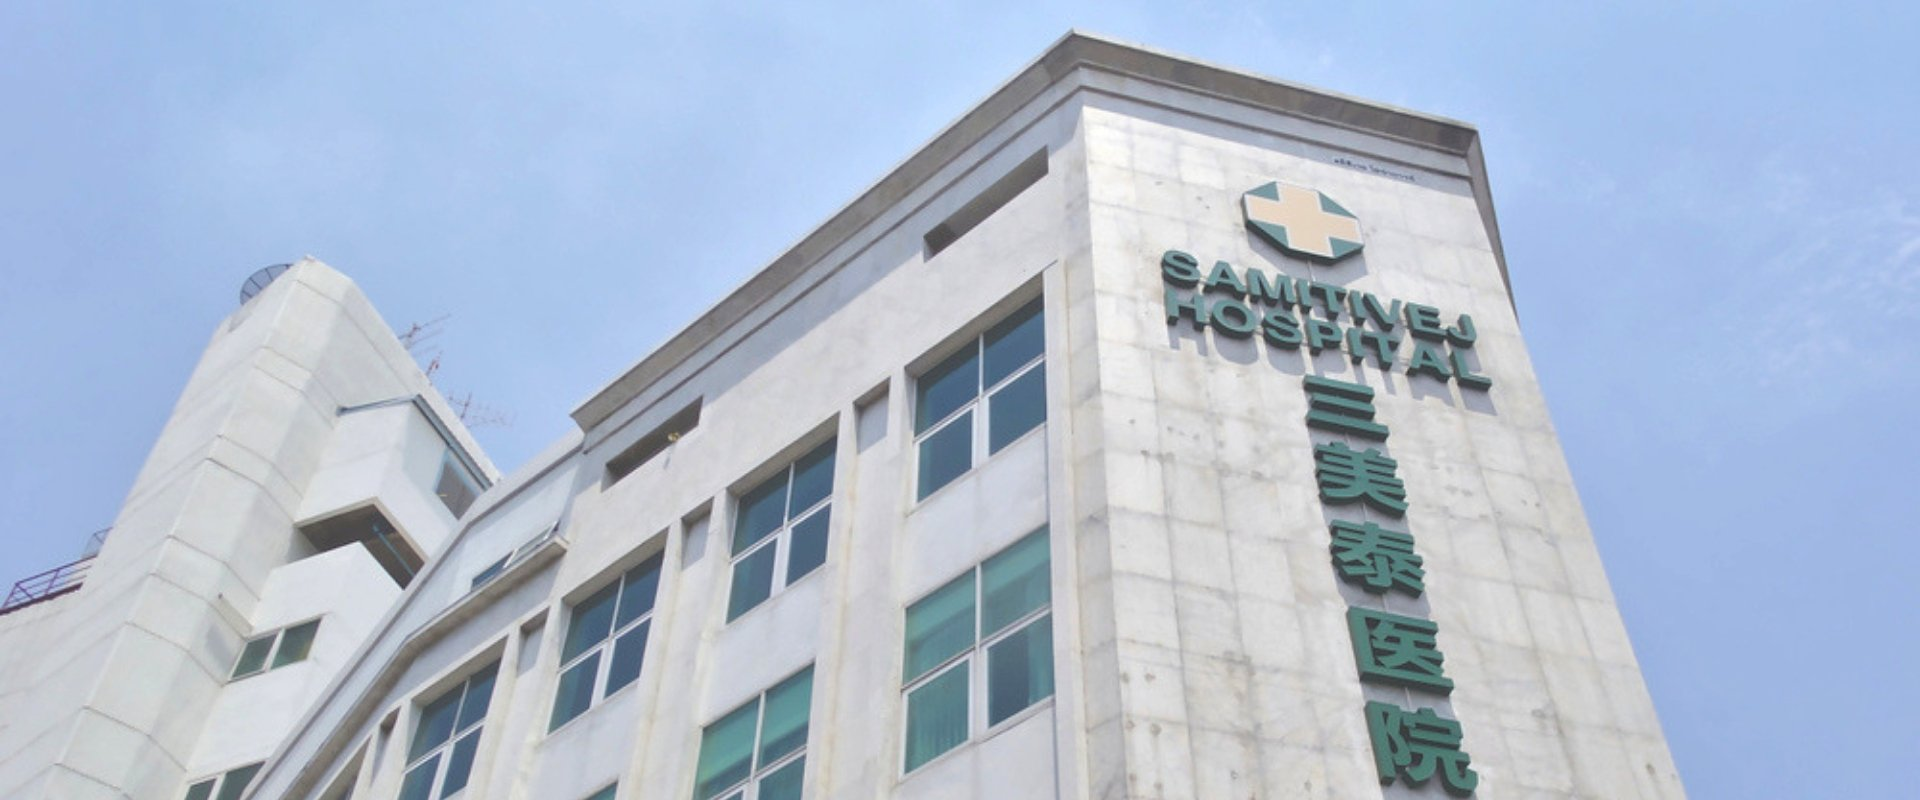 Samitivej Hospital - Bangkok's Leading Hospitals